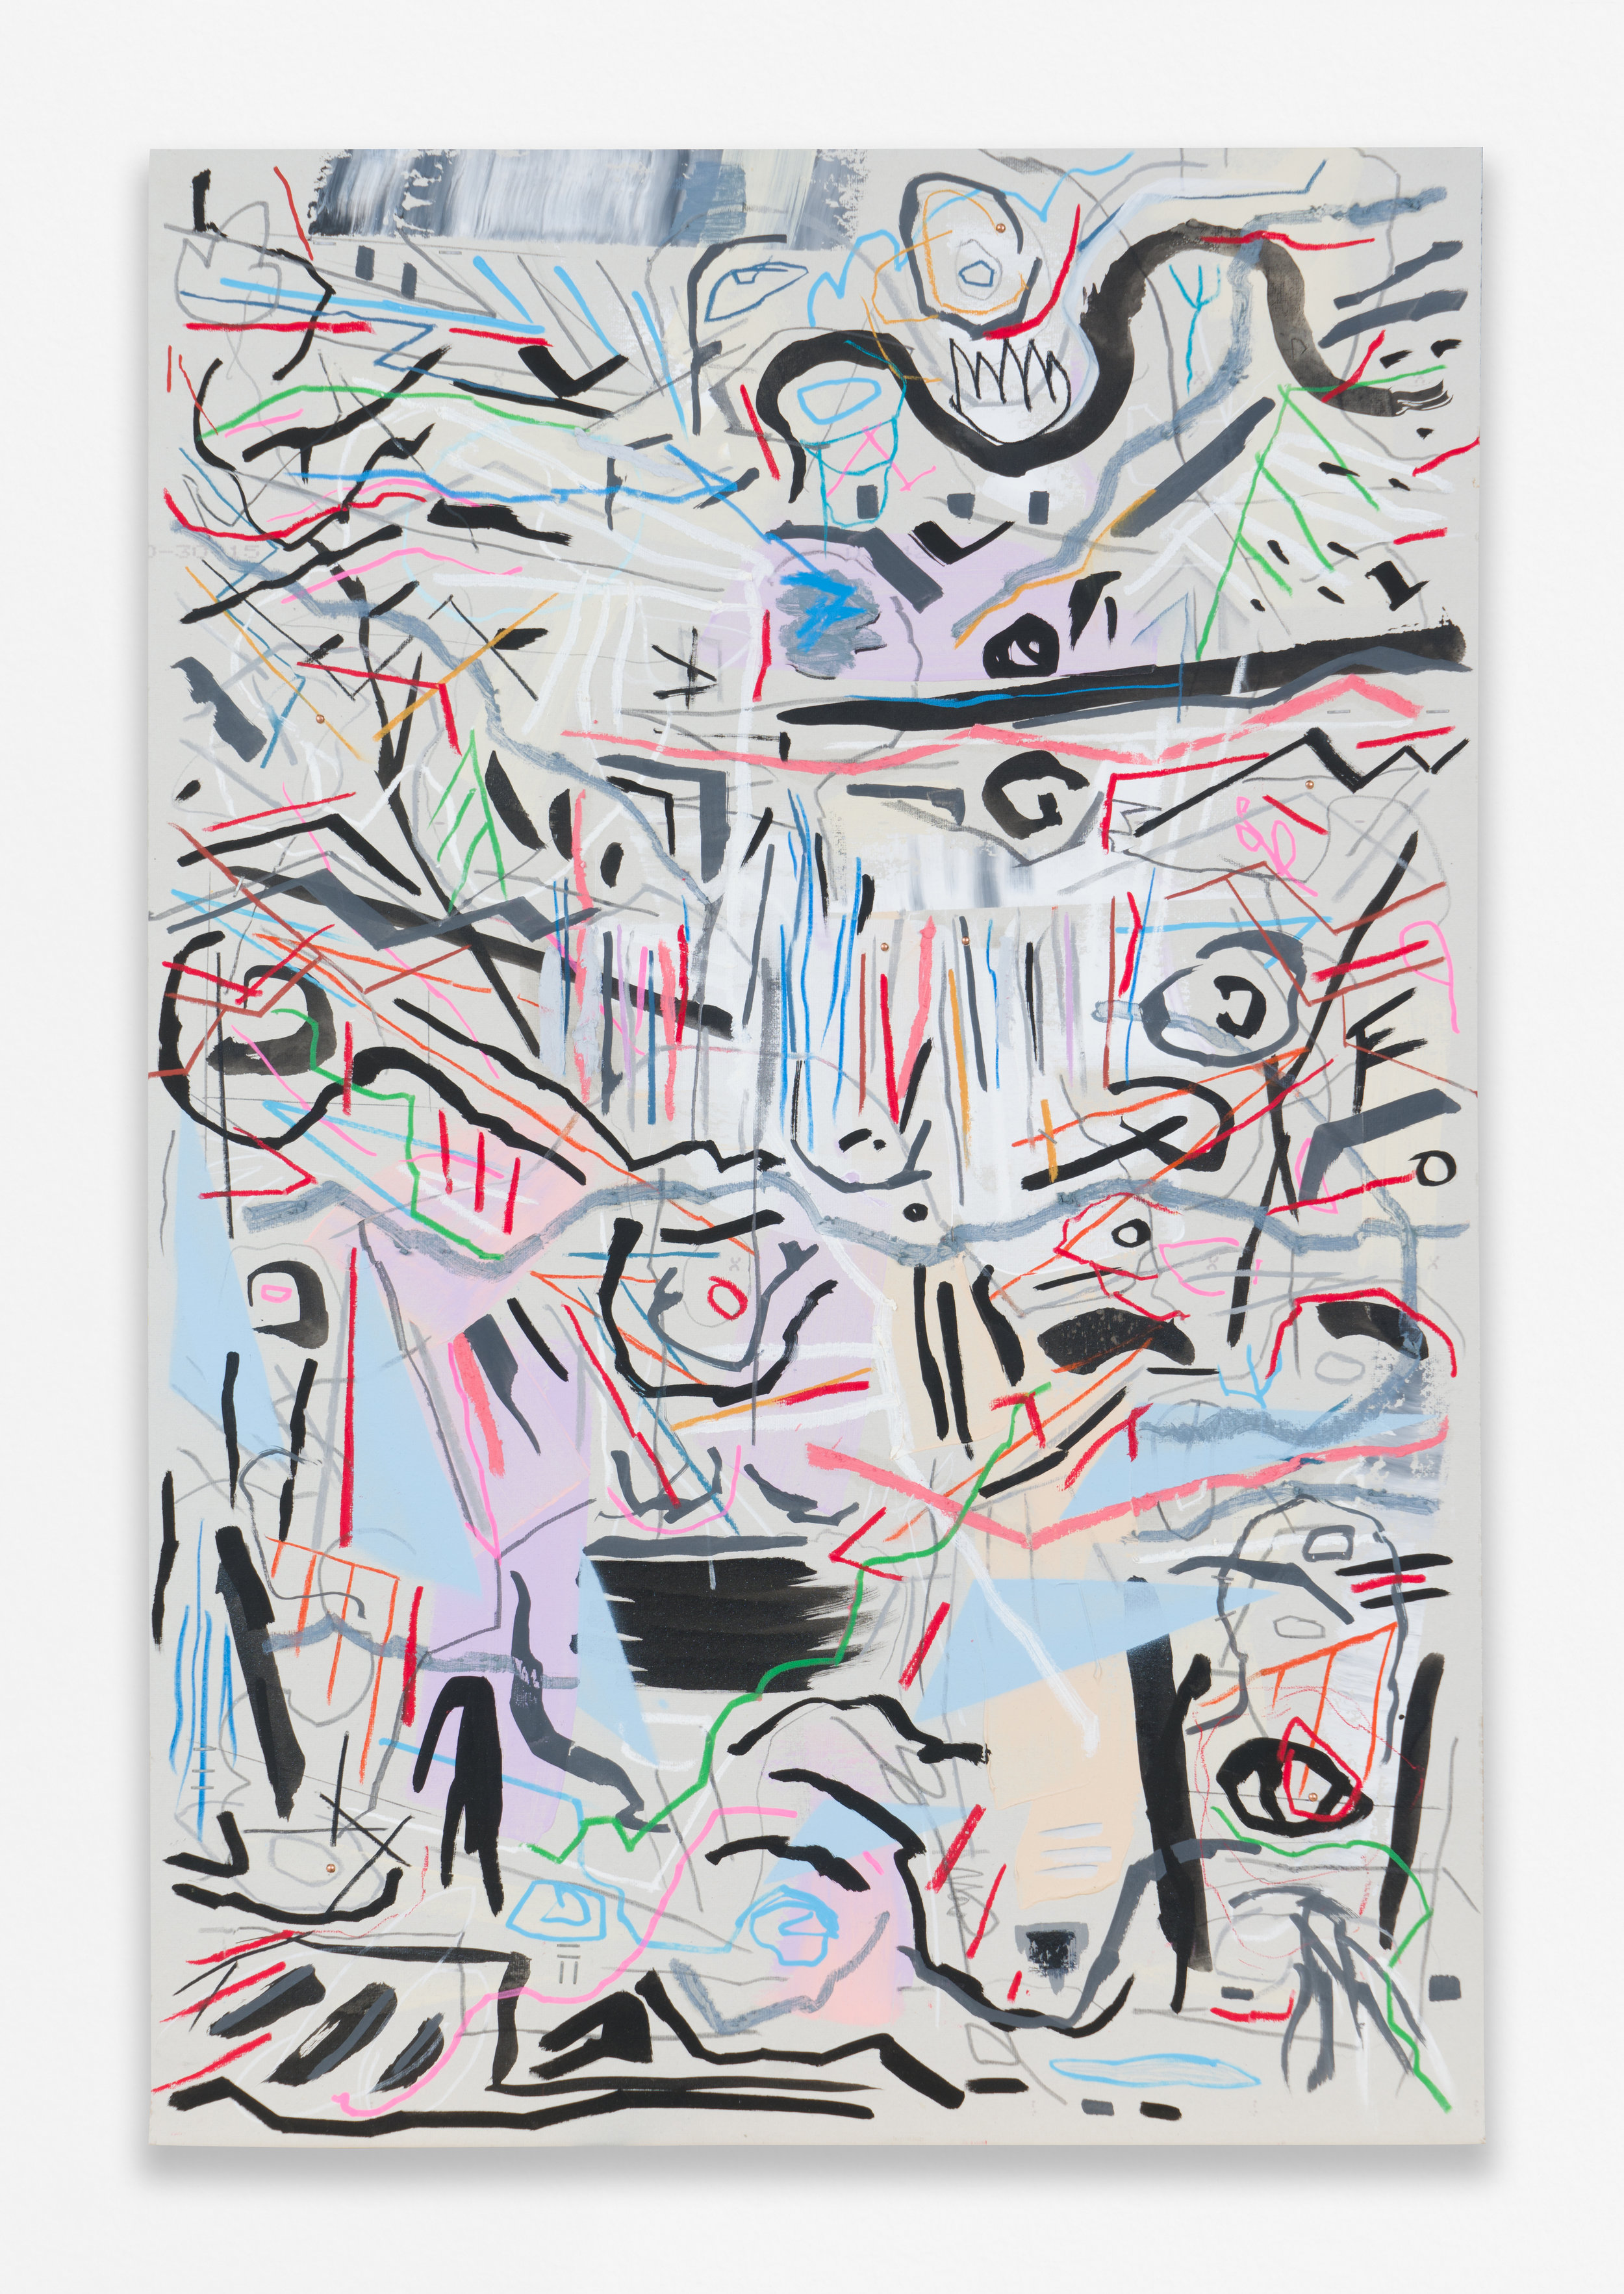 """Naptime, 2018 Acrylic, pastel, oil, graphite, and ink on sheetrock panel in artist's wooden frame 36 x 24"""" (91.4 x 61 cm)"""